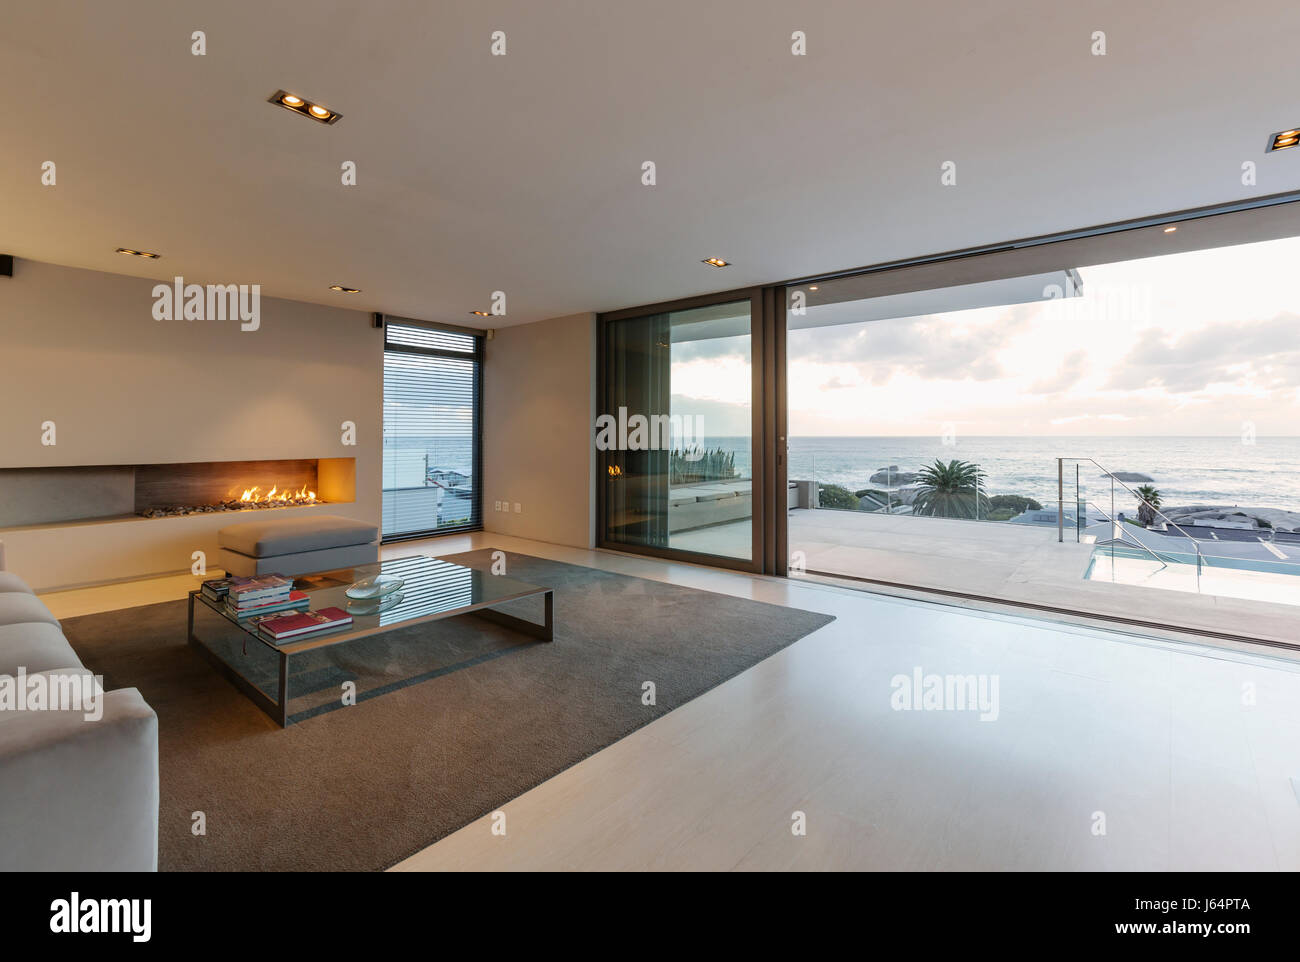 Modern Minimalist Luxury Living Room With Gas Fireplace And Patio Doors Open To Ocean View